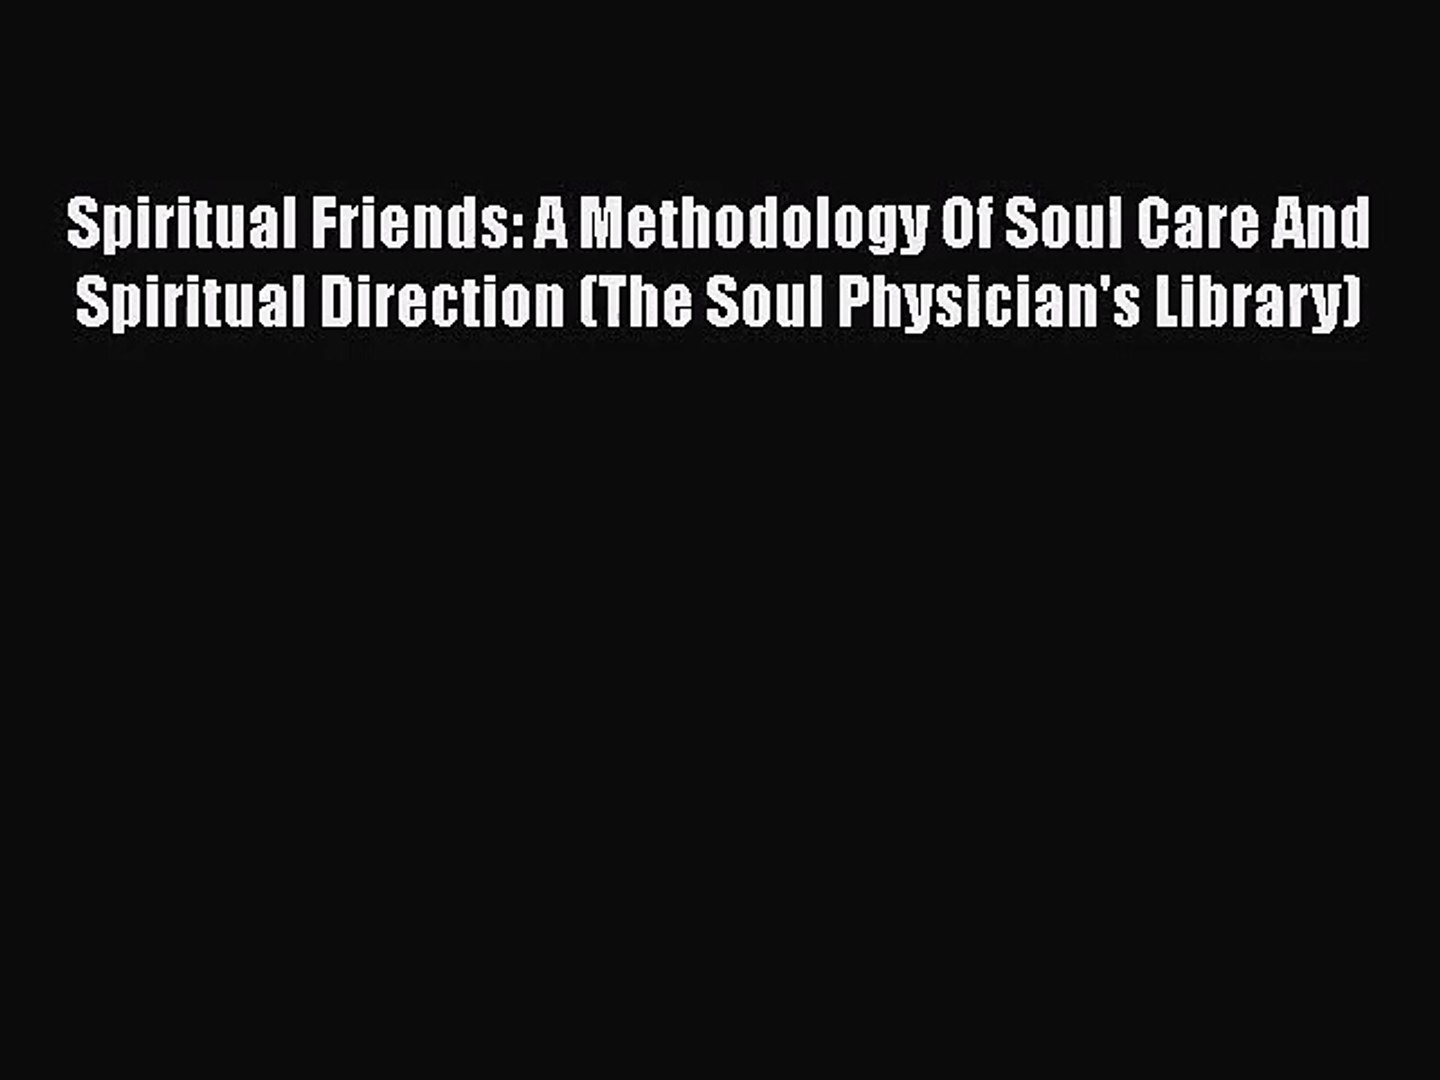 PDF Download Spiritual Friends: A Methodology Of Soul Care And Spiritual Direction (The Soul